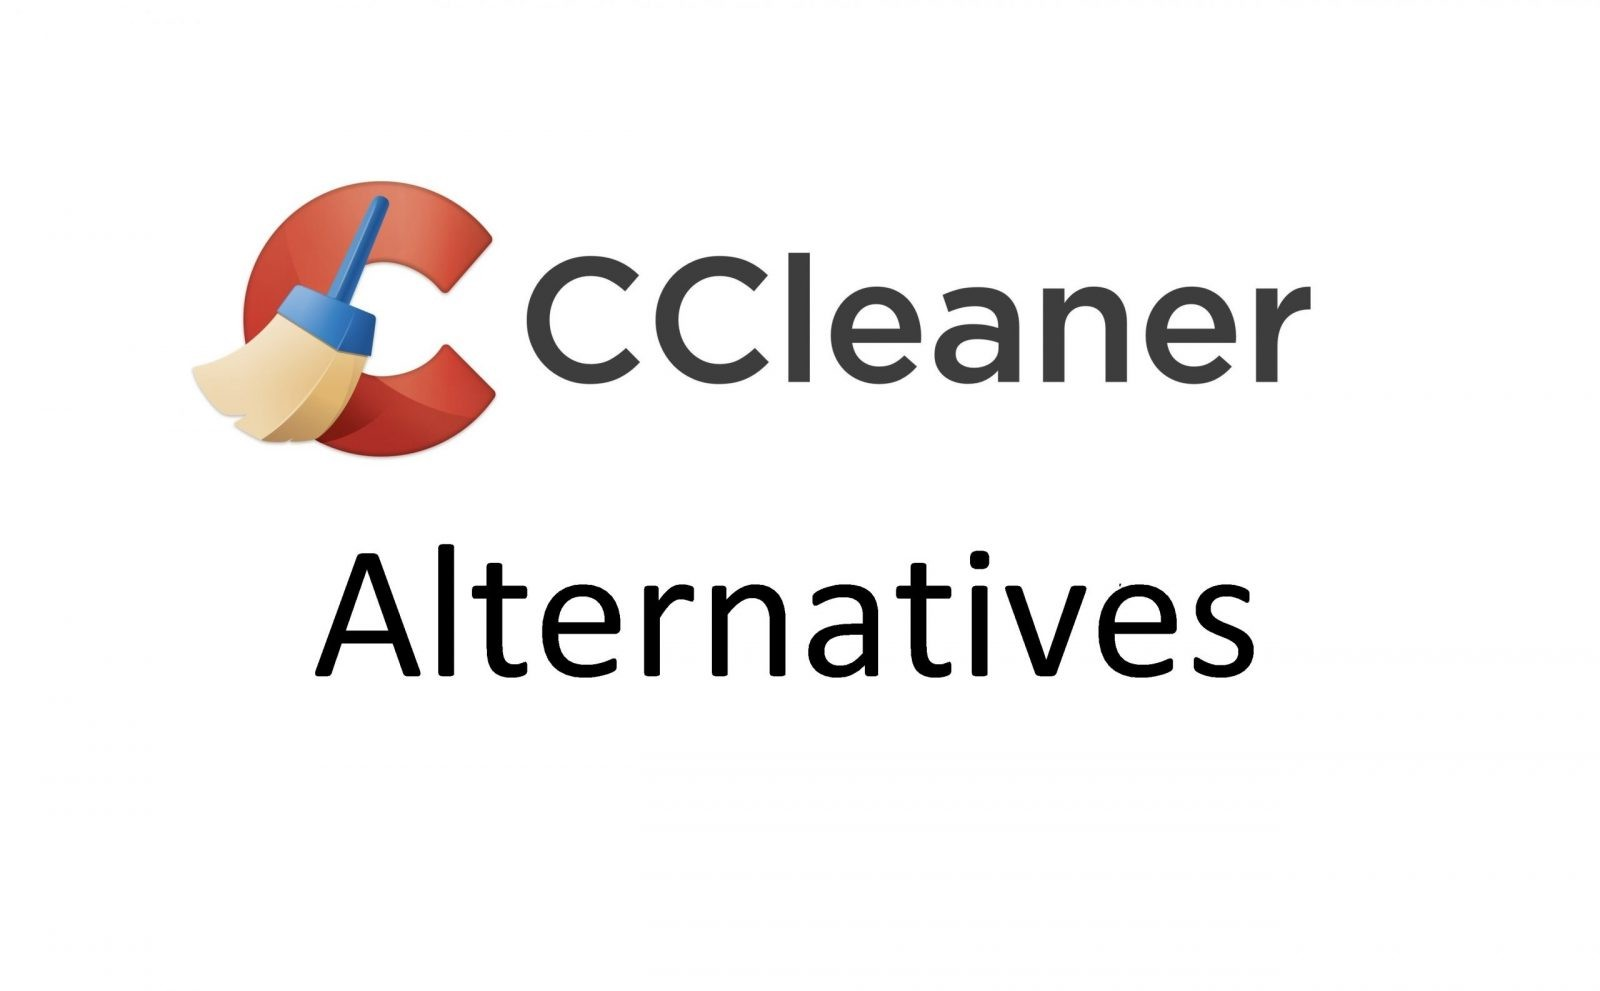 16 Best CCleaner Alternatives to Clean PC Junks in 2021